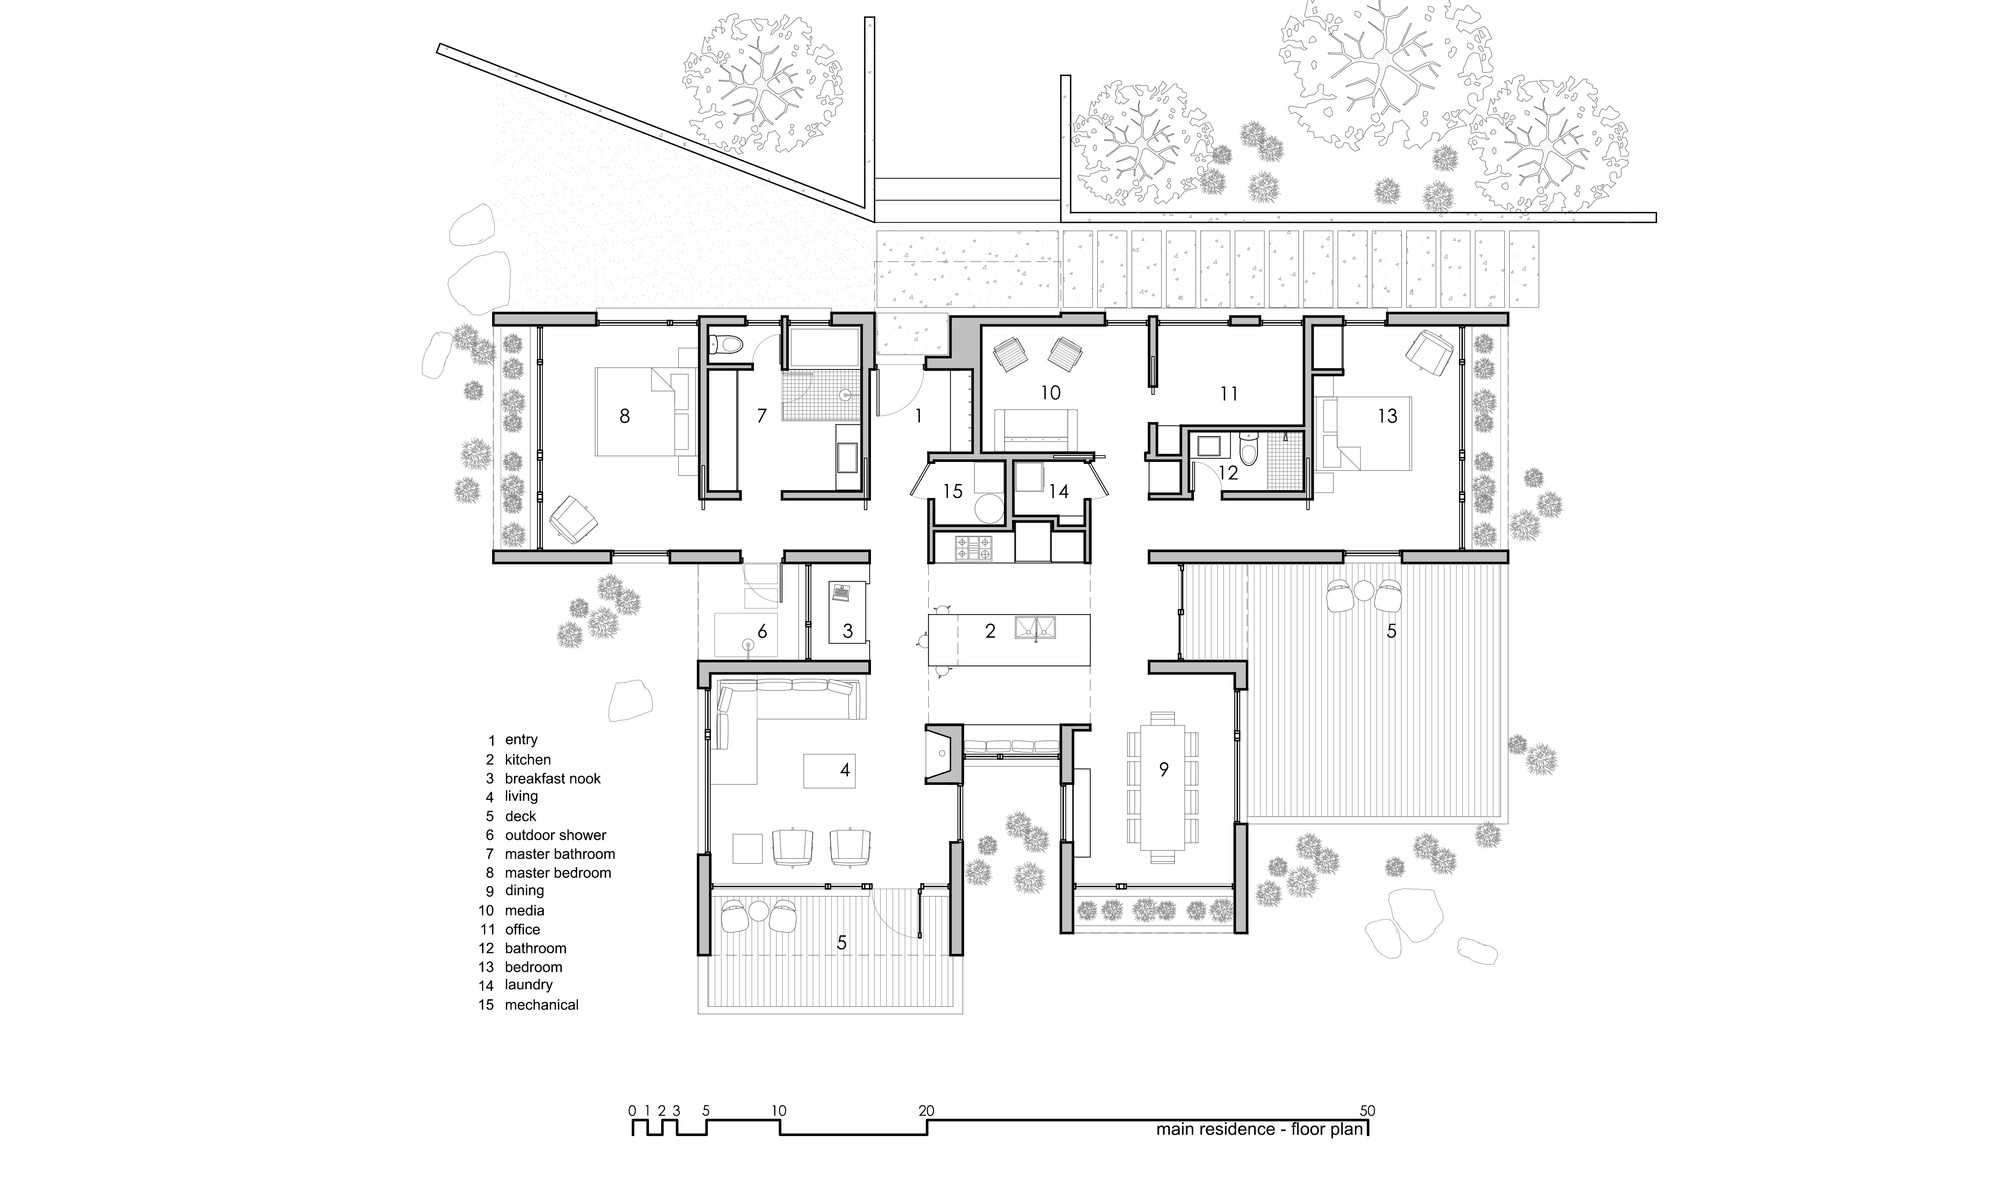 Simple Main Residence Floor Plan